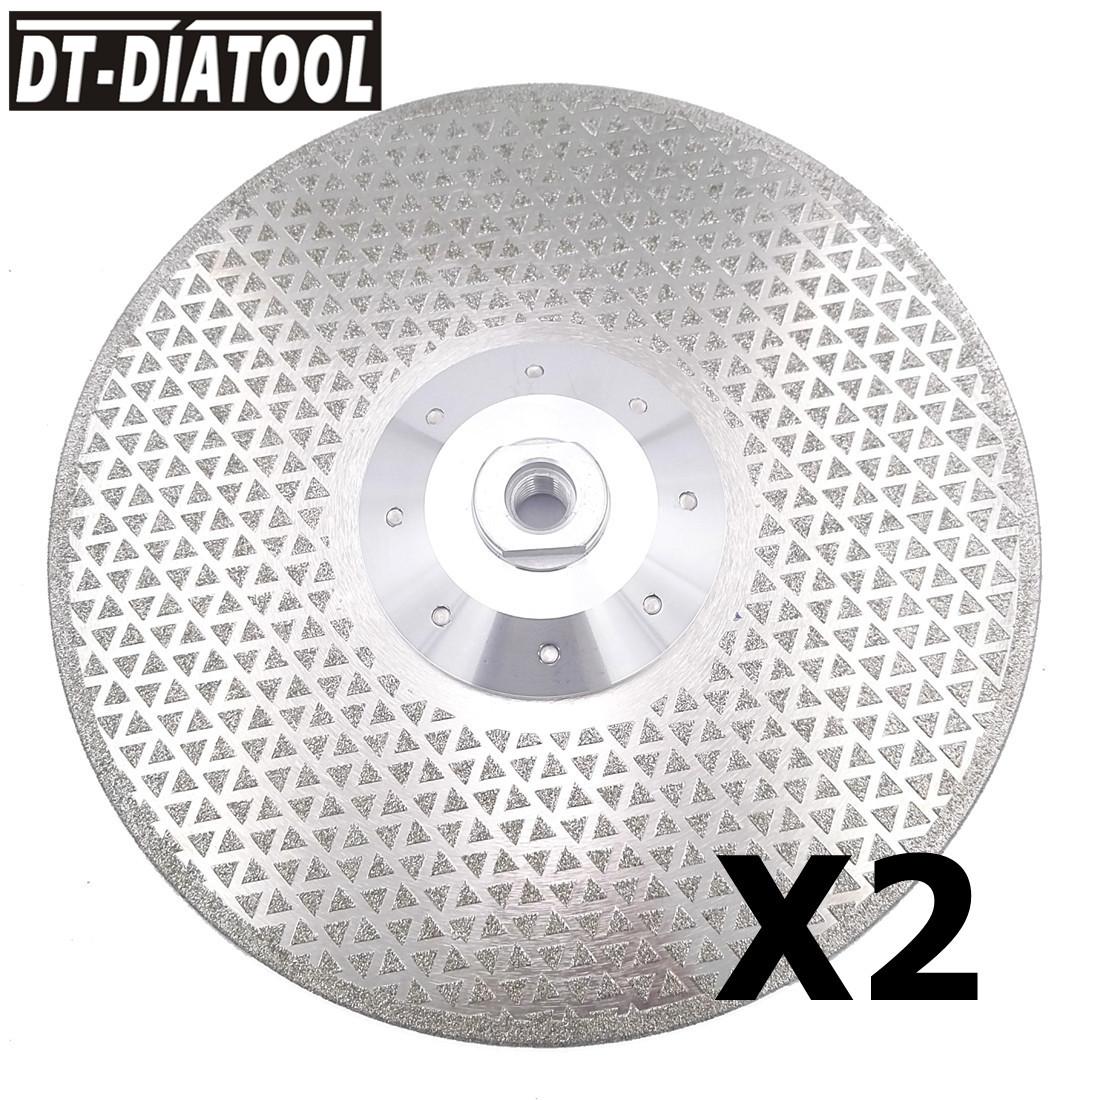 DT-DIATOOL 2pcs 9/230mm Electroplated Diamond Cutting Saw Blade Grinding Disc Double Sides M14 Flange for Granite Marble v groove electroplated diamond grinding wheel for tungsten carbide stone agate megmatic material grinding e014